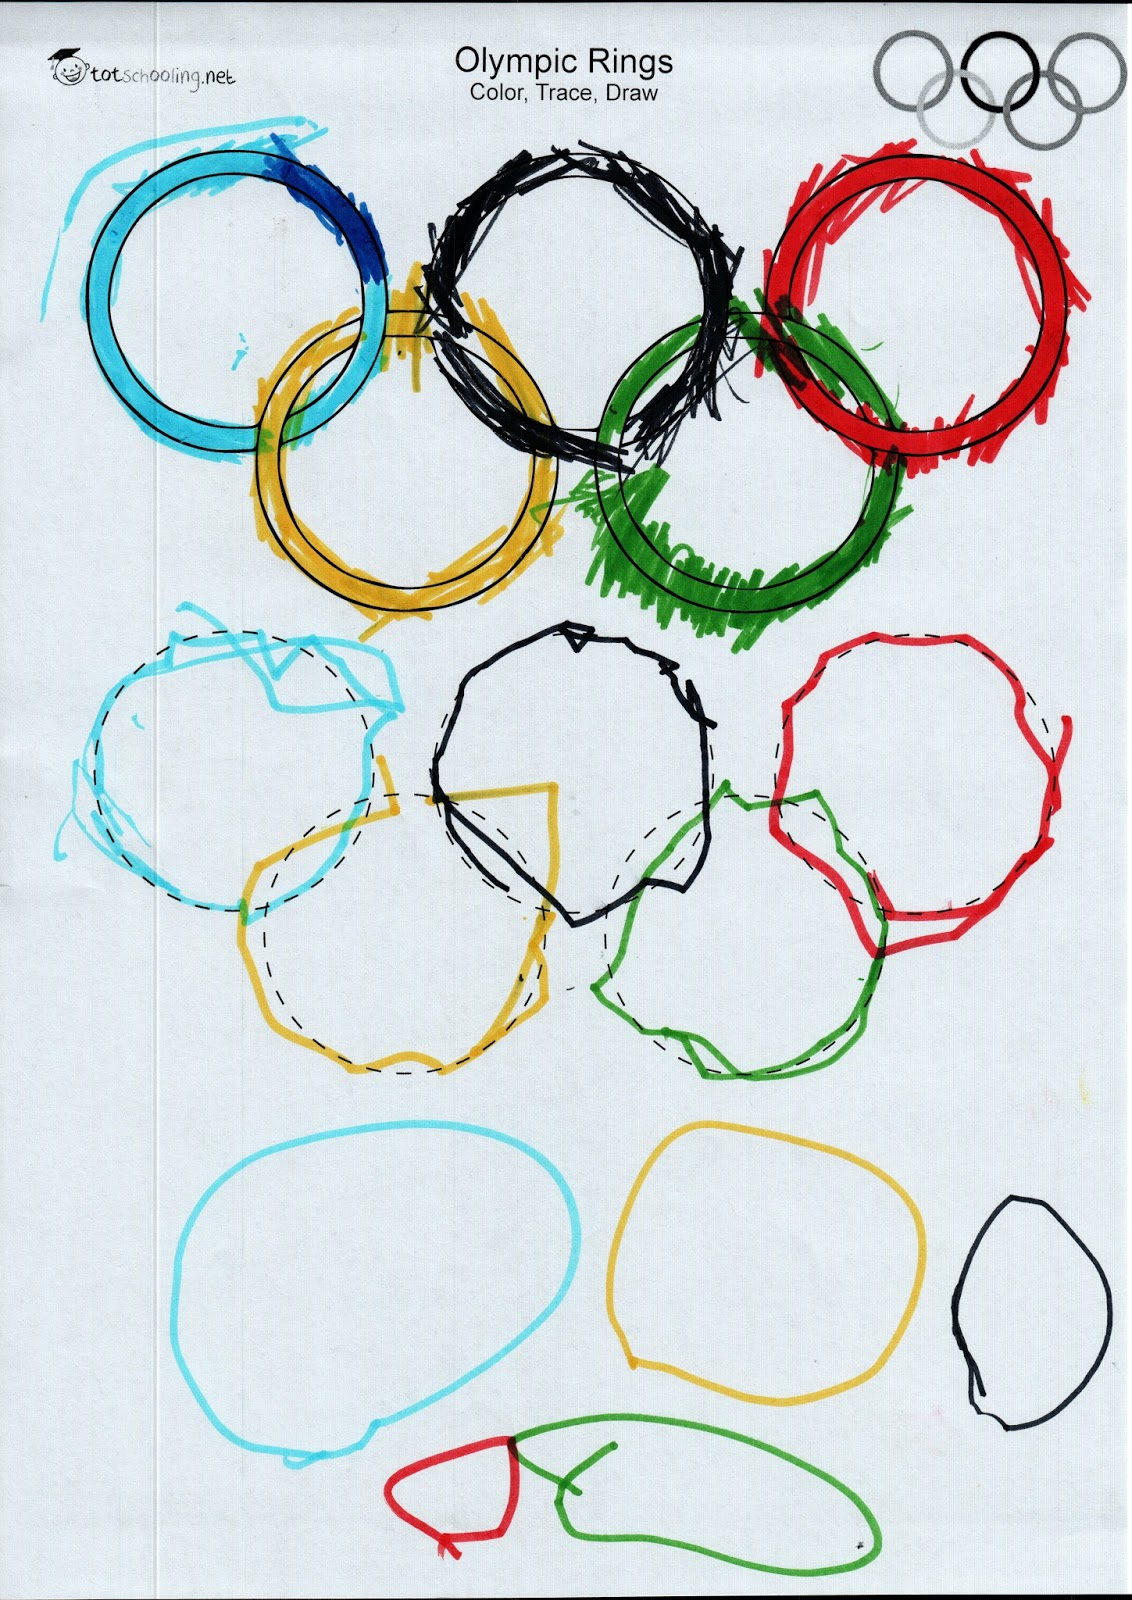 Celebrating The Rio Olympics With Your Kids